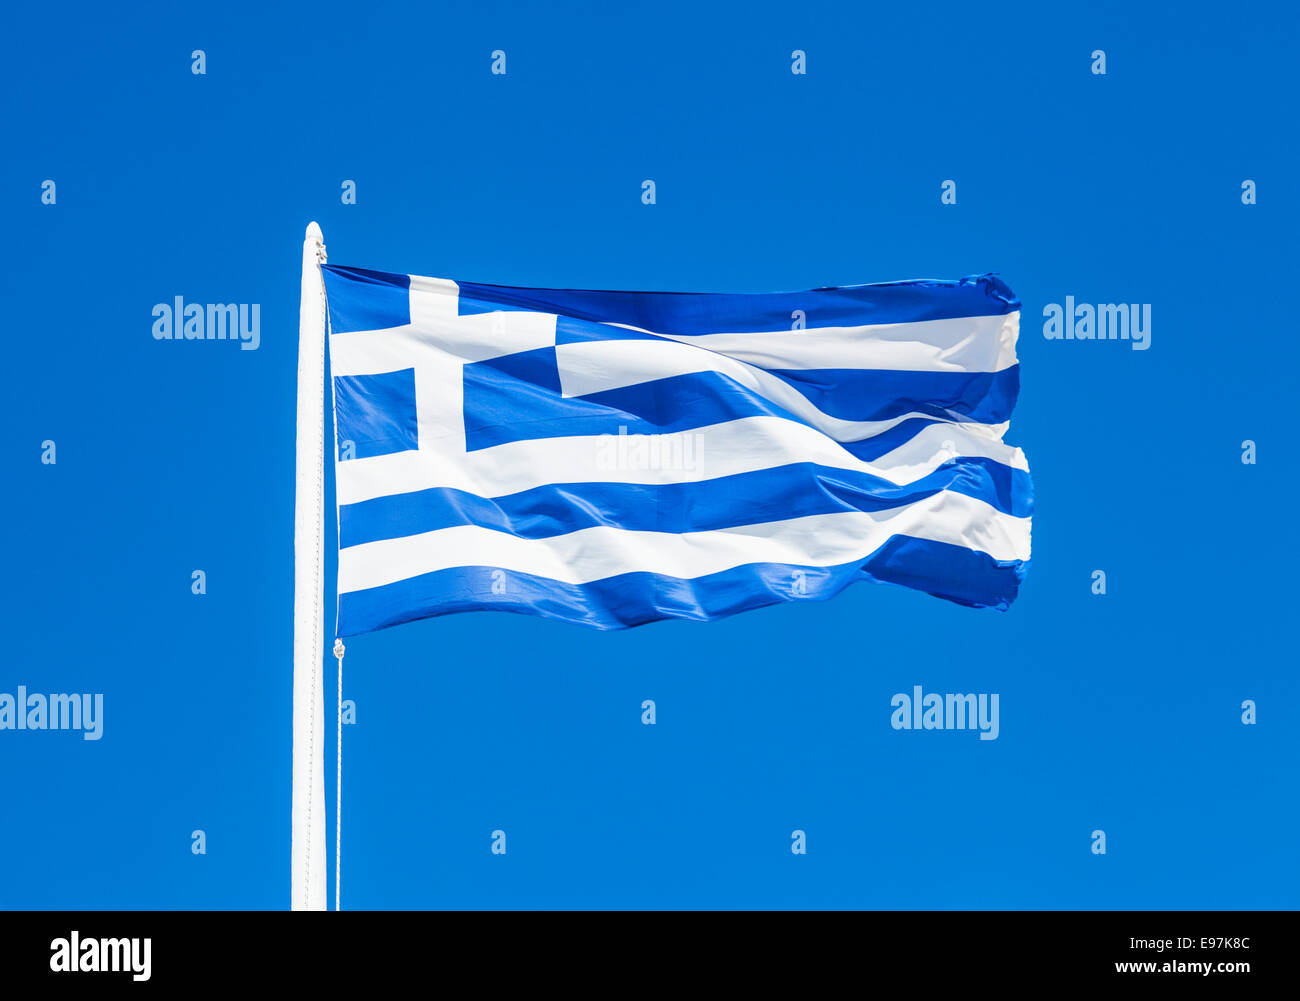 Drapeau grec contre le ciel bleu Photo Stock